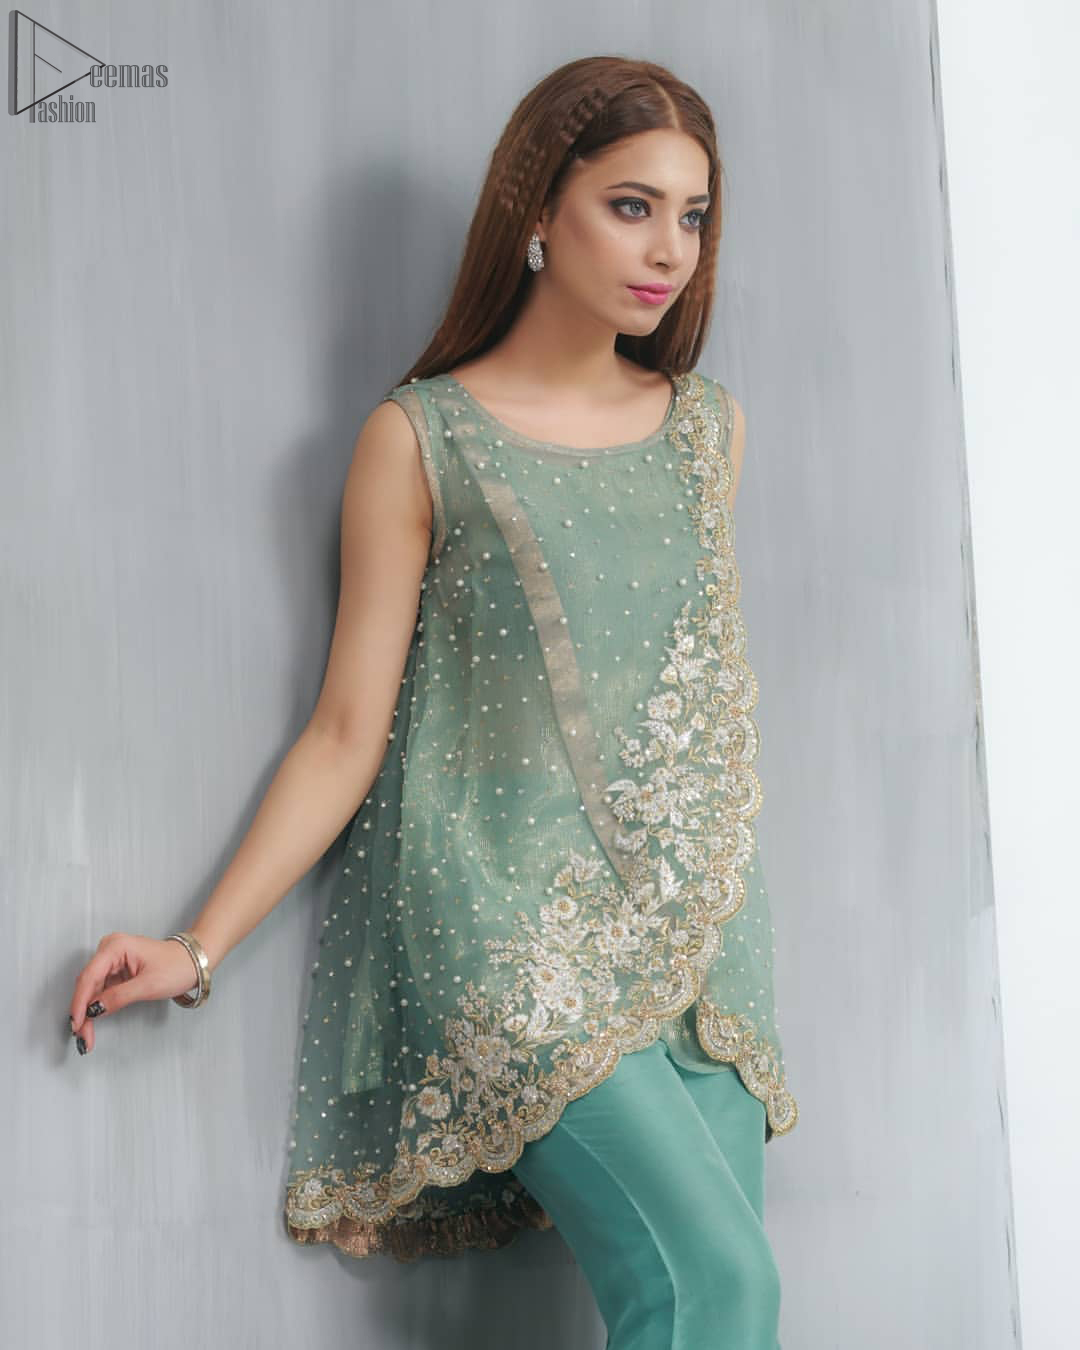 This outfit should be the next addition to your wardrobe. Gussy up the glamour with this intricately embroidered Sea Green ensemble accentuated with floral motifs and finished with scalp borders. An example of beauty and elegance. Look breathtakingly stylish in this embroidered regalia furnished.